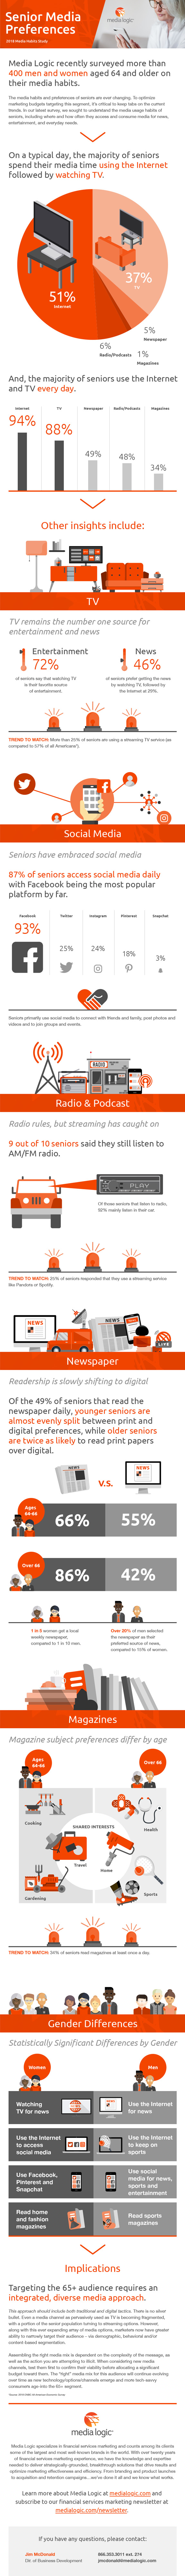 2018 Senior Media Habits Infographic